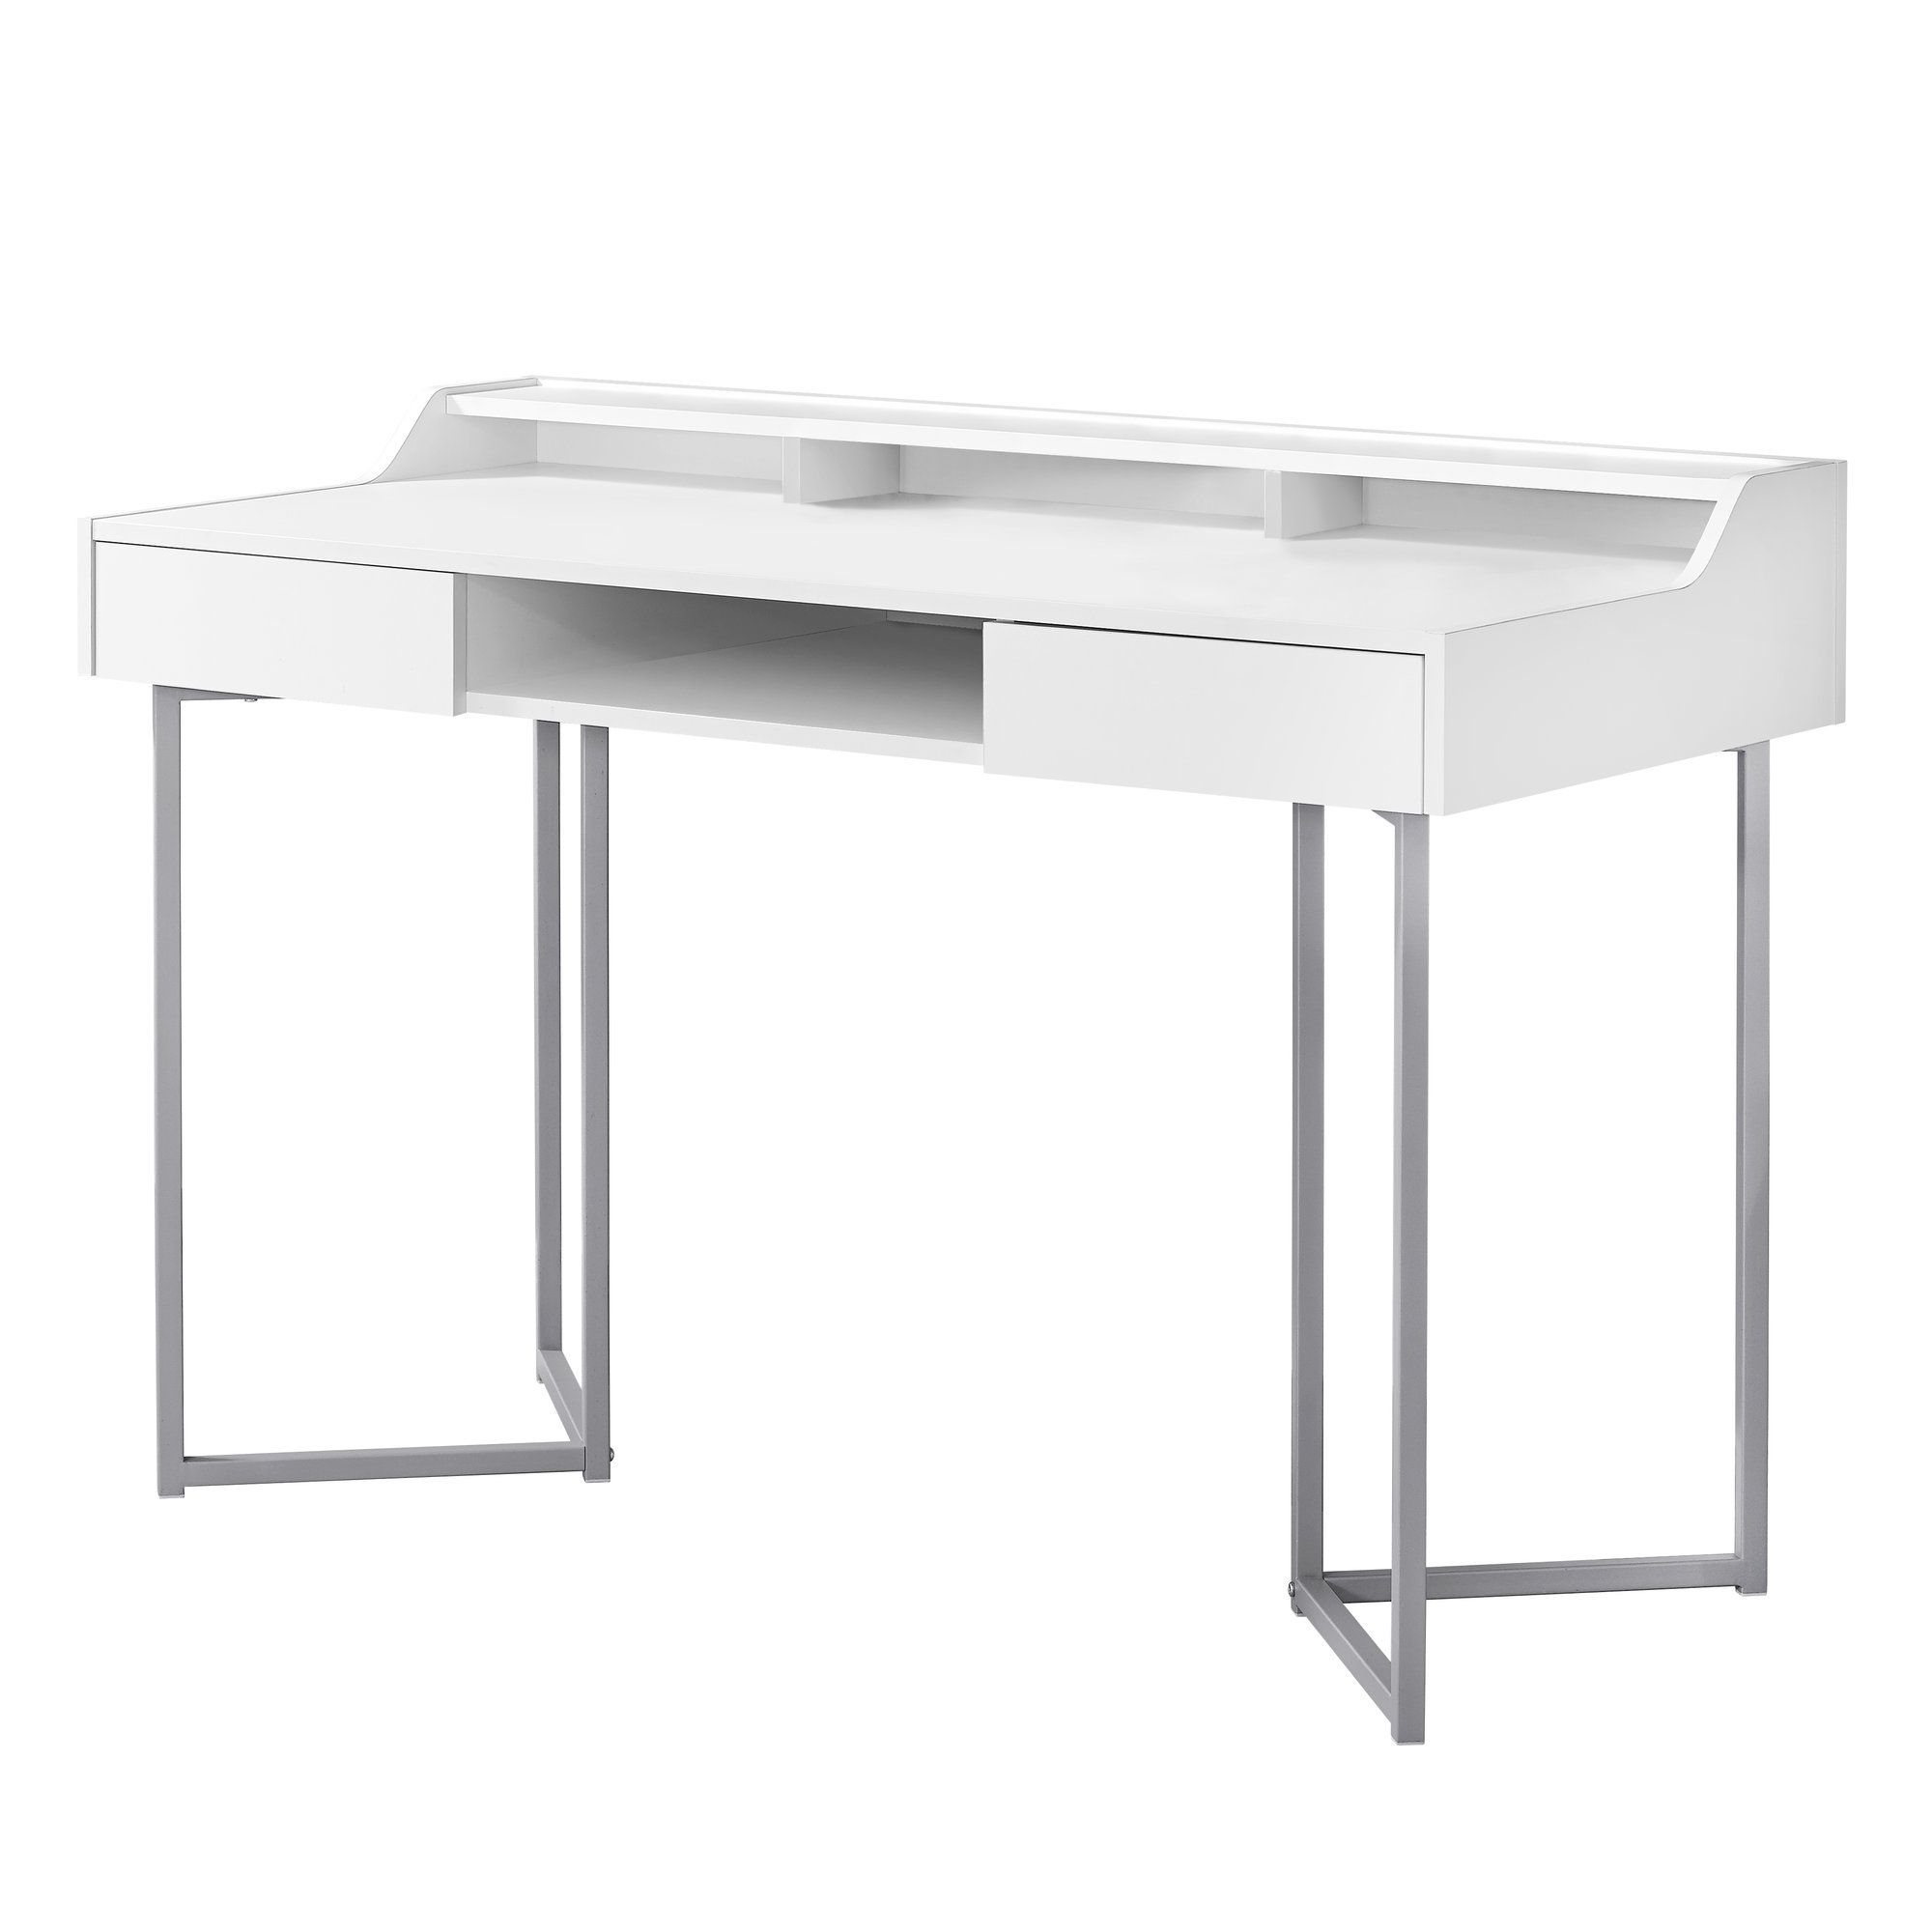 48 White And Silver Contemporary Rectangular Computer Desk With Drawers 33827738 White Computer Desk Computer Desk With Shelves Contemporary Writing Desk